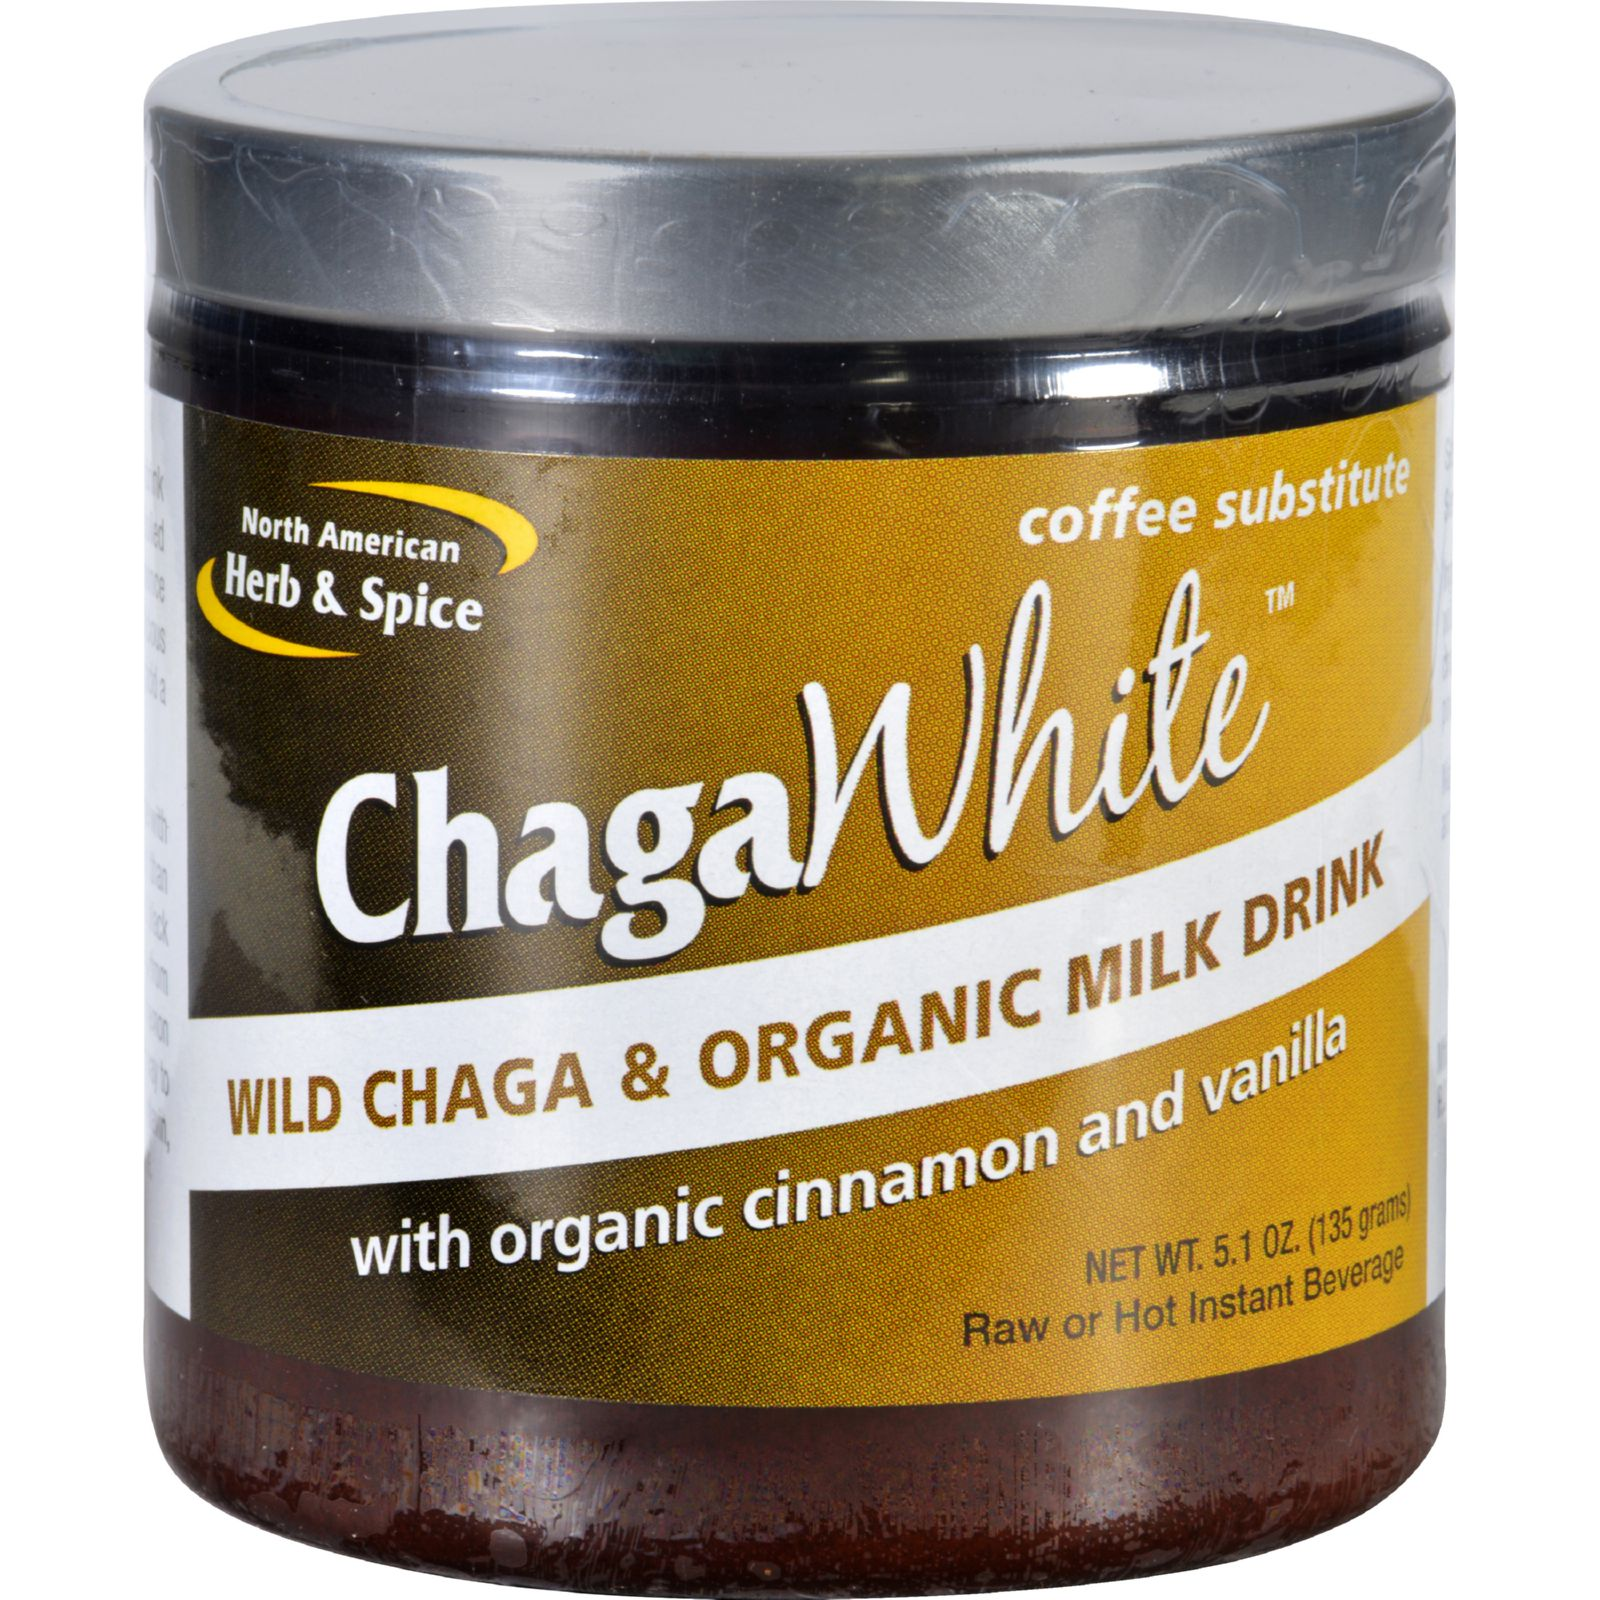 North American Herb and Spice Chagawhite - 5.1 oz